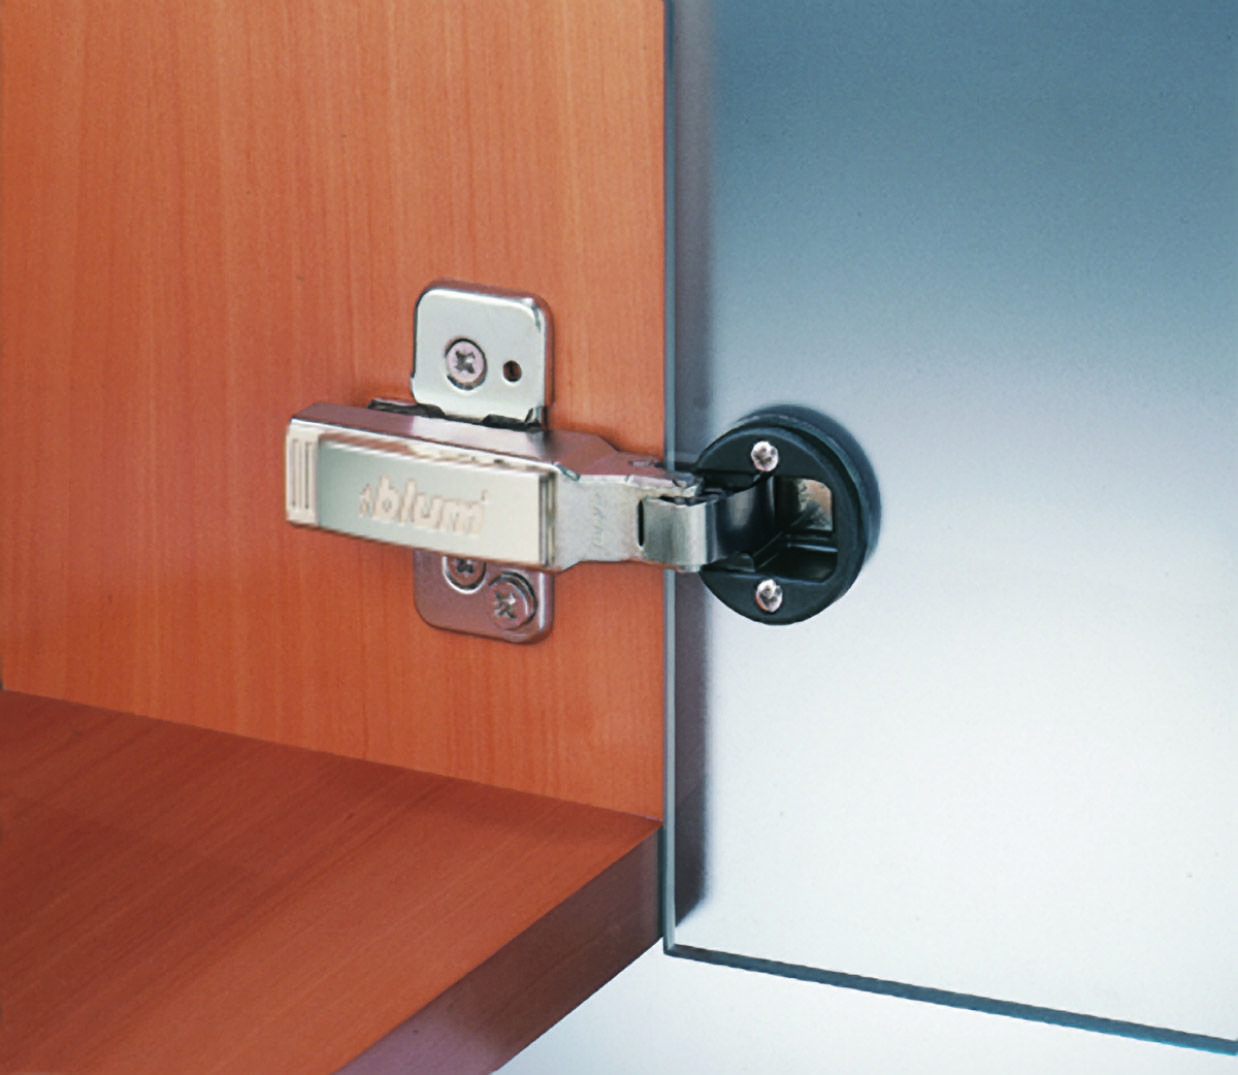 The 75t4100 clip top 95 degree glass door hinge by blum is for glass thickness of